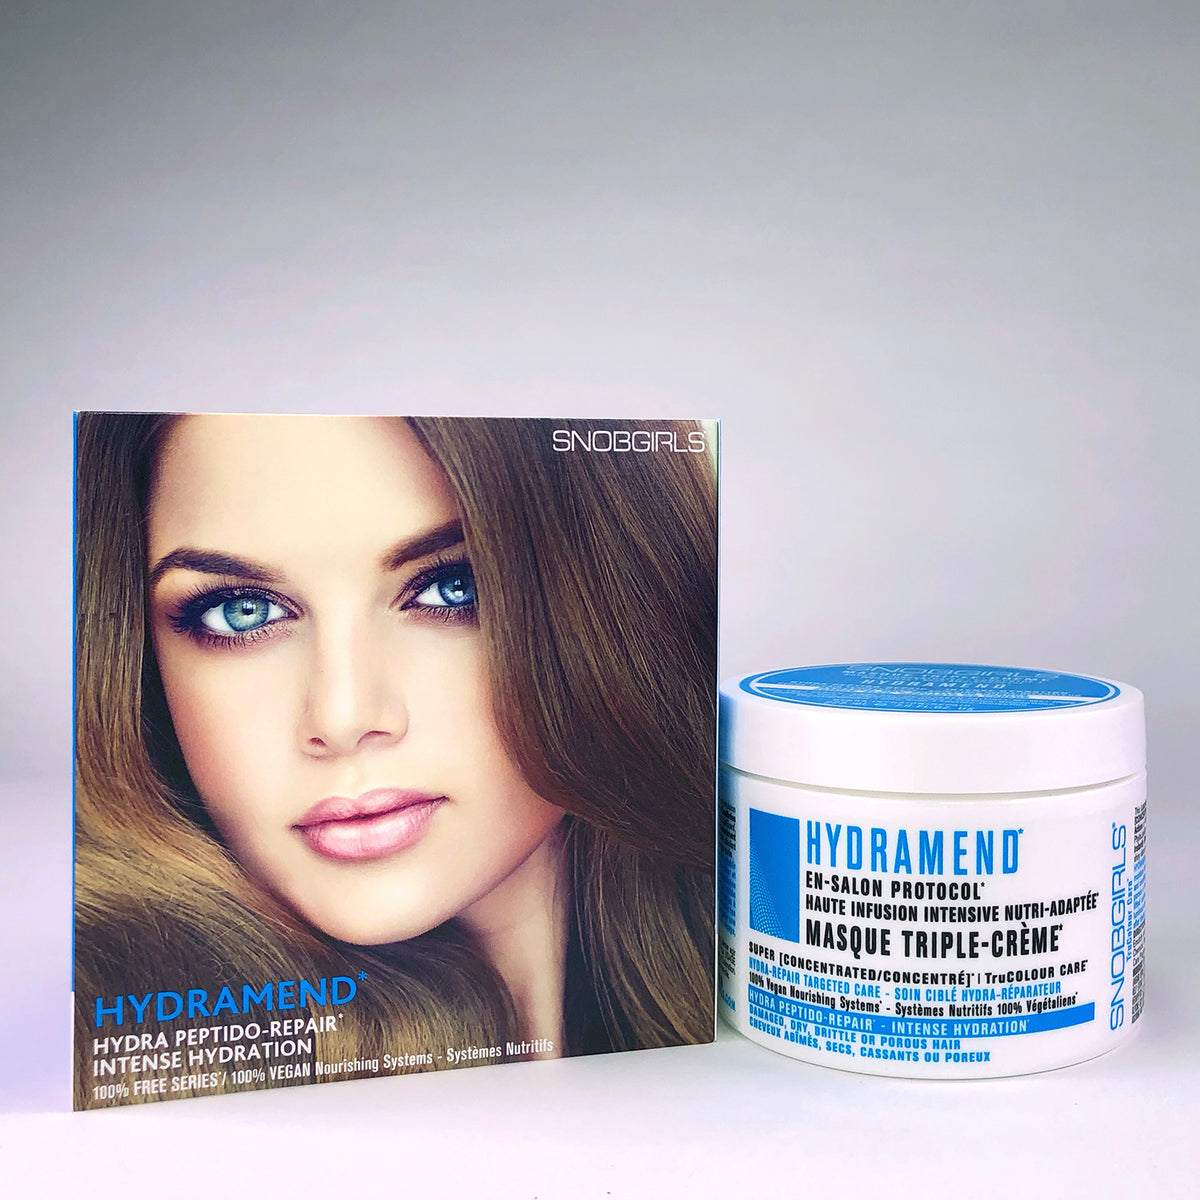 HYDRAMEND Intense Repair & Hydration Triple-Creme Masque - SNOBGIRLS.com